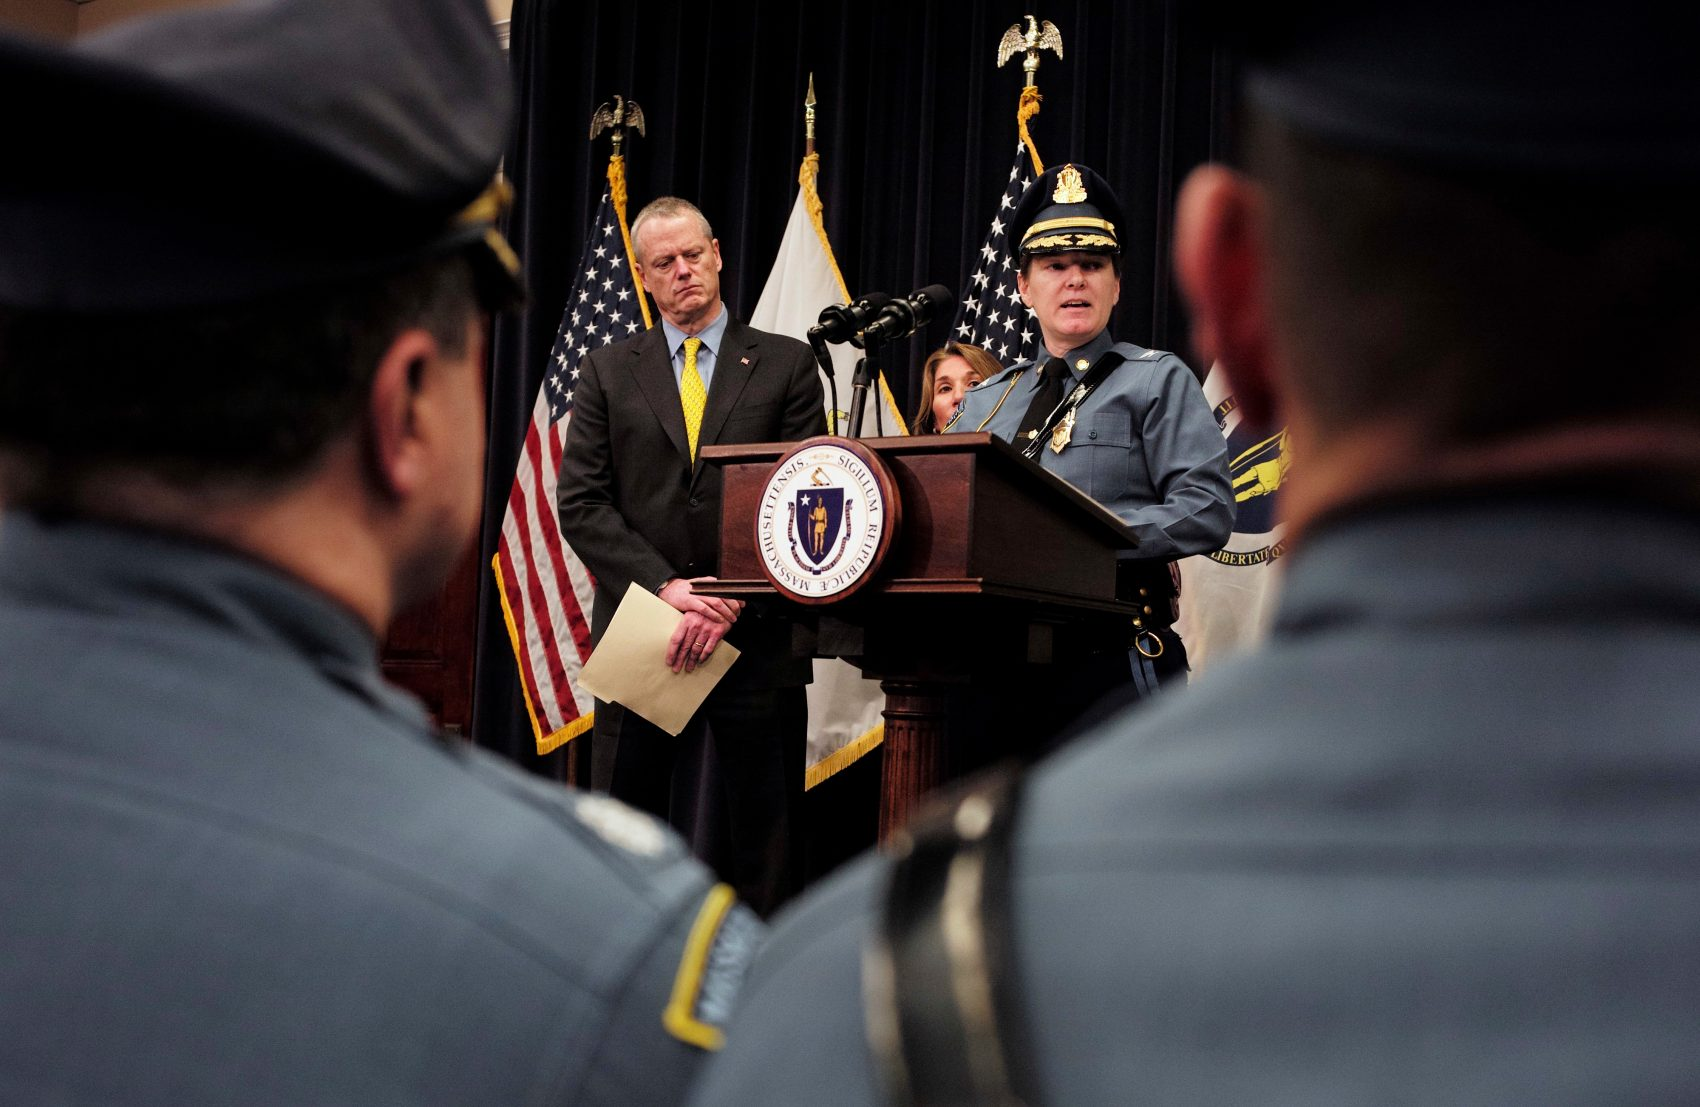 Gov. Charlie Baker and State Police Col. Kerry Gilpin face reporters during a news conference to announce reforms for the embattled agency. (Steven Senne/AP/file)